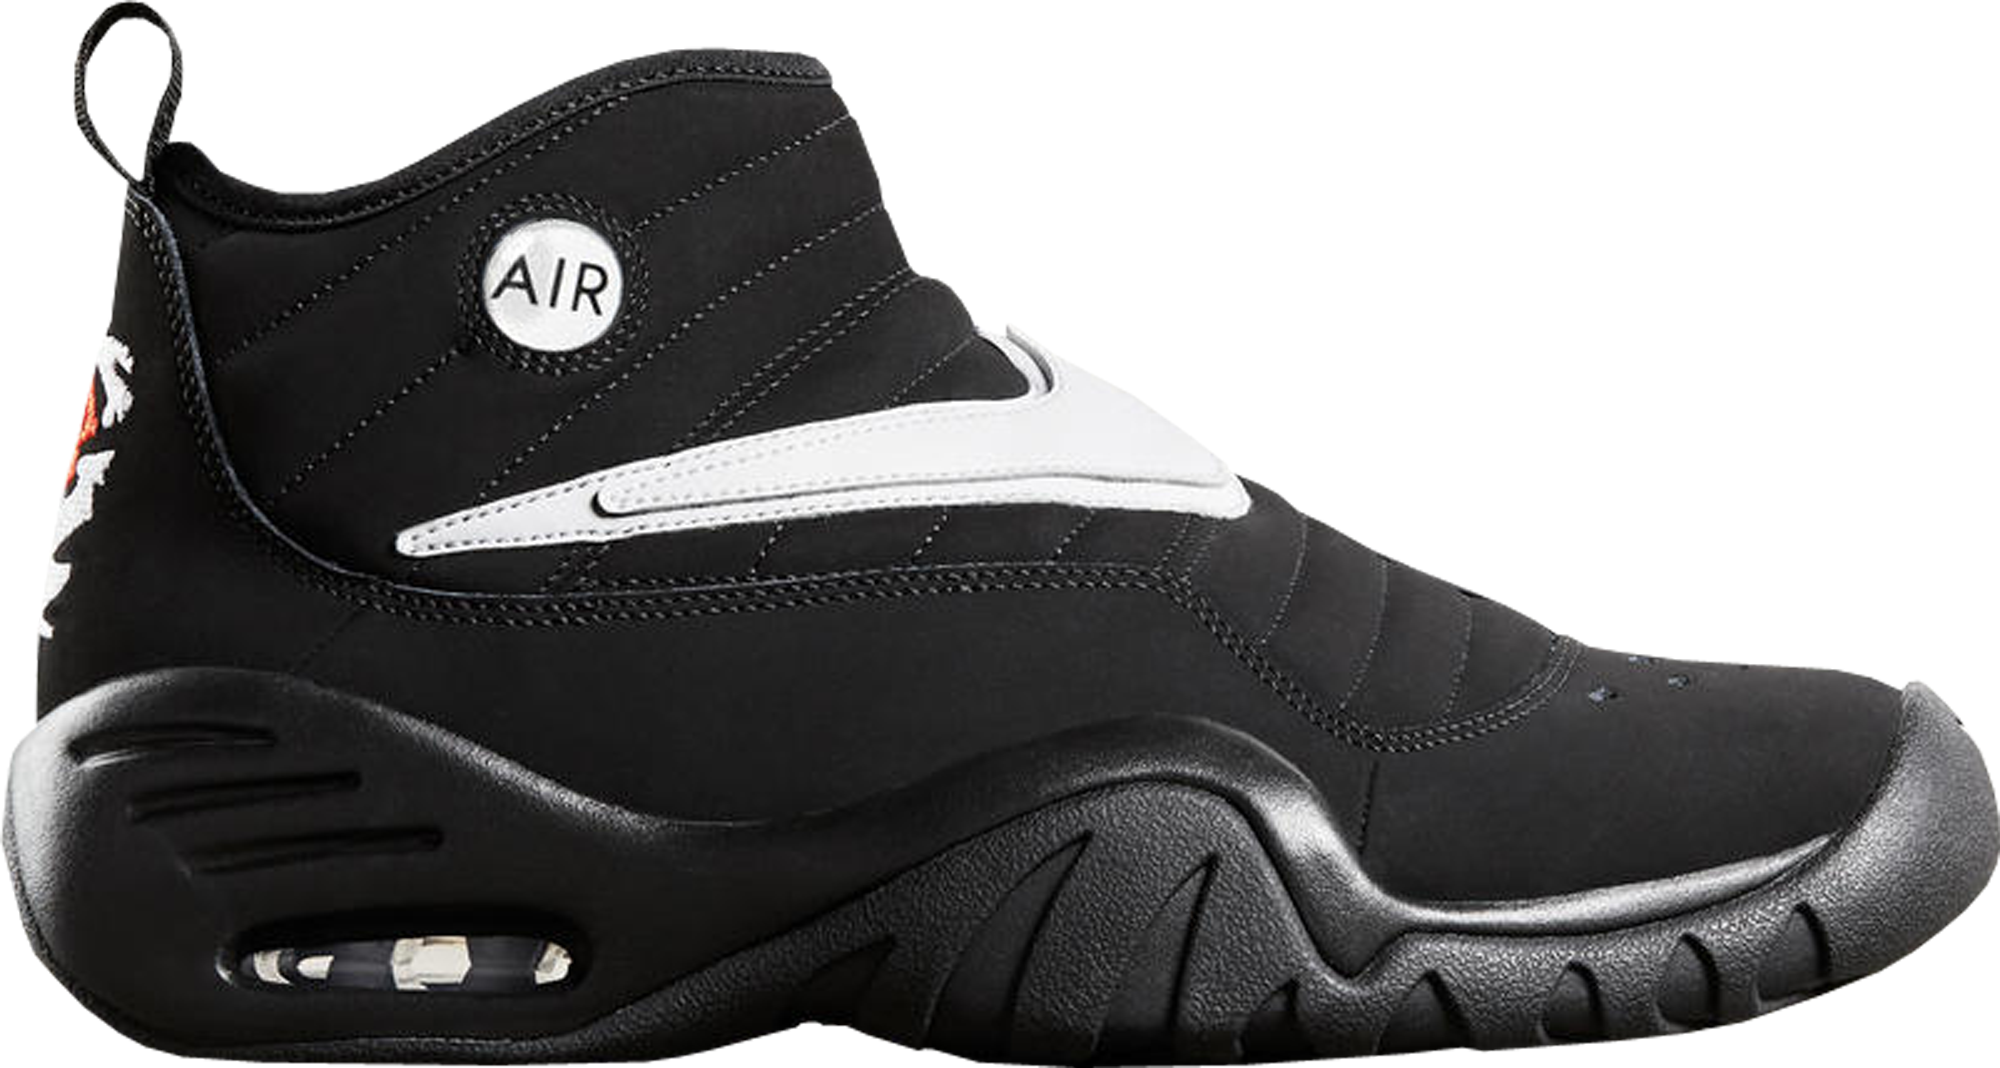 3ae6d930d819 Nike Air Shake N Destrukt Black White - StockX News